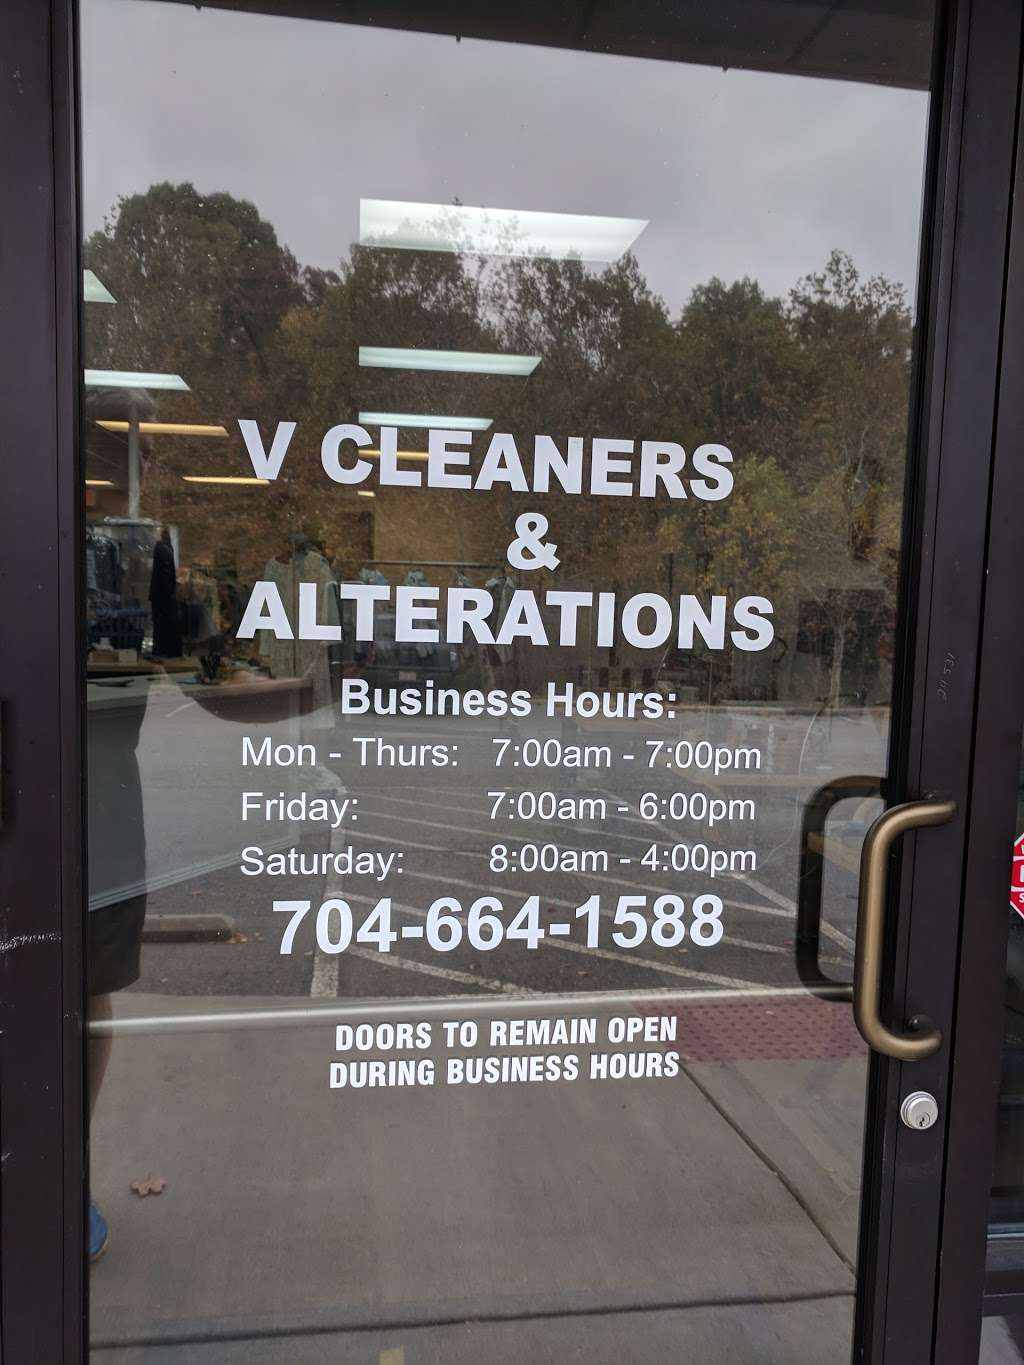 V-Cleaners & Alterations - laundry  | Photo 2 of 5 | Address: unit d, 736, Brawley School Rd, Mooresville, NC 28117, USA | Phone: (704) 664-1588